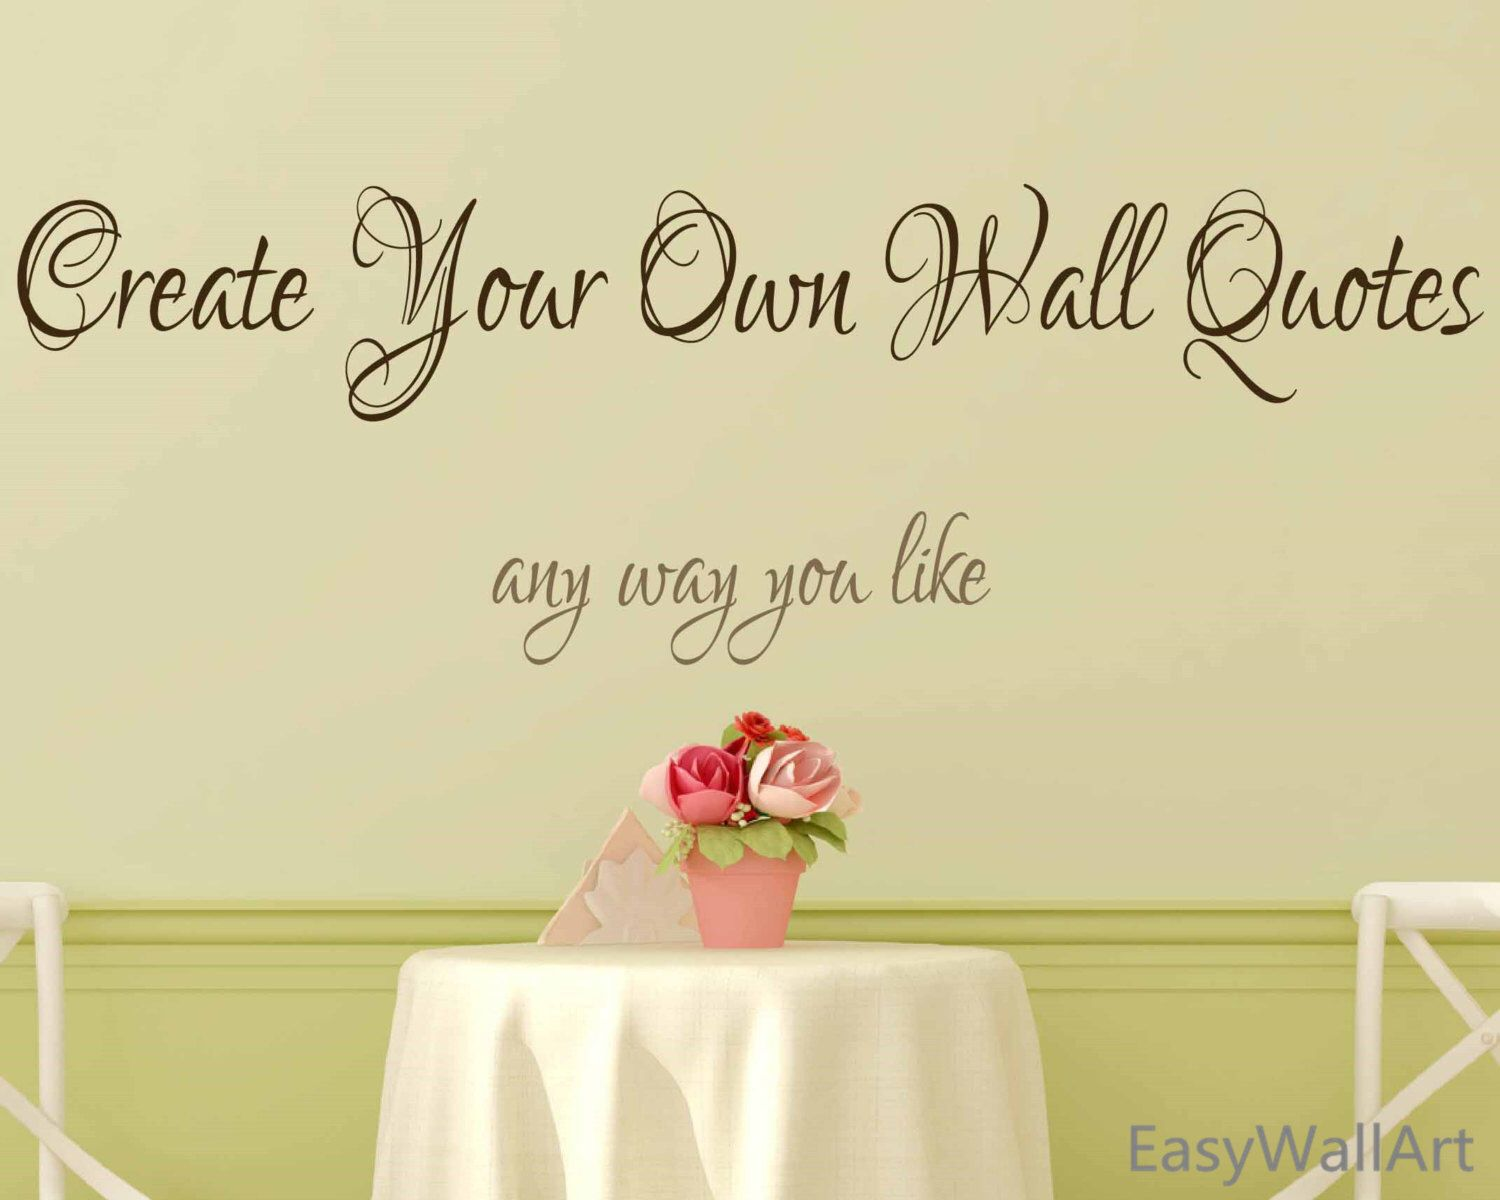 Create Your Own Wall Decal - Custom Wall Decals Quotes, Custom Vinyl Letters, Custom Vinyl Lettering Custom Wall Sayings Custom Decal #C70 by EasyWallArt on Etsy https://www.etsy.com/listing/225650677/create-your-own-wall-decal-custom-wall